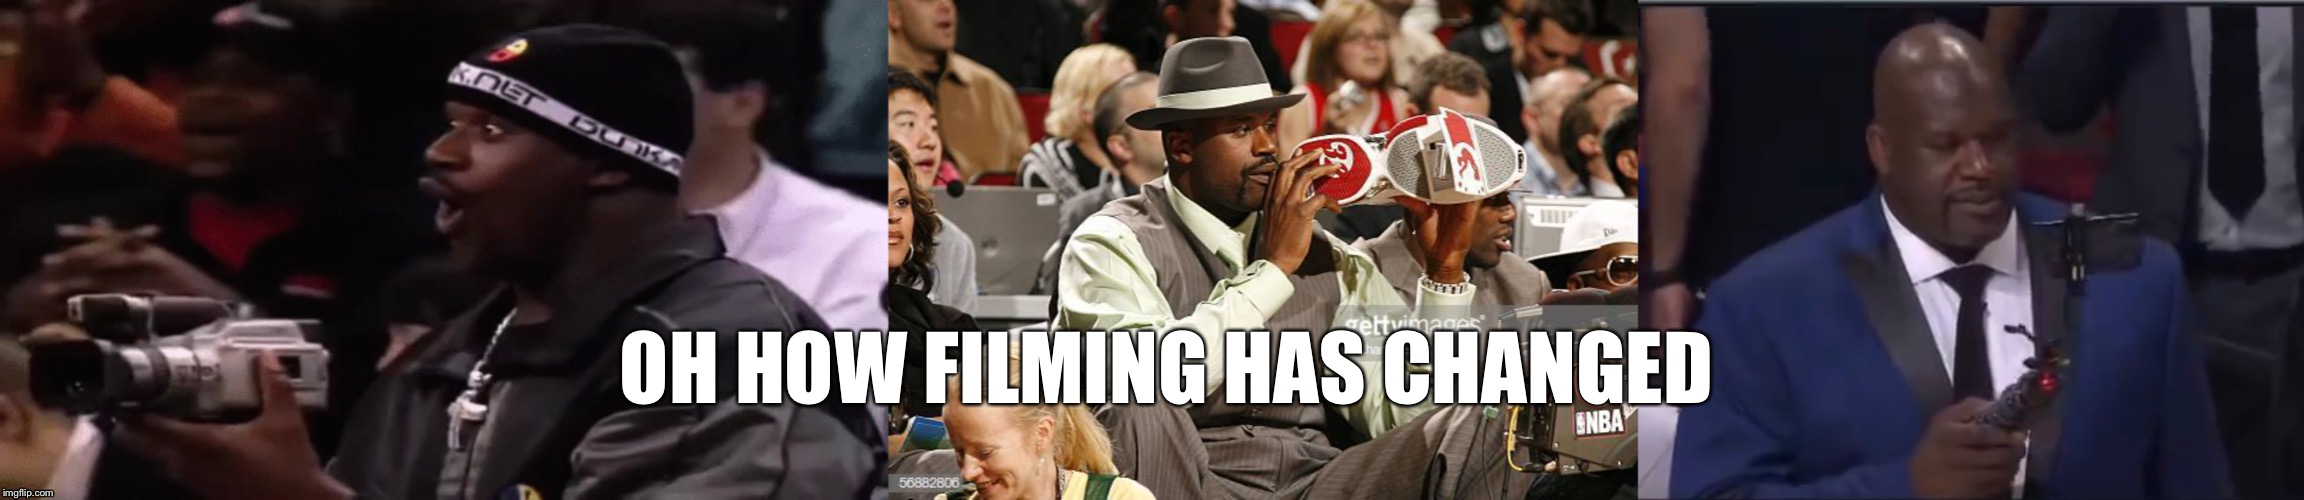 OH HOW FILMING HAS CHANGED | image tagged in shaq meme,camera,shaq camera | made w/ Imgflip meme maker